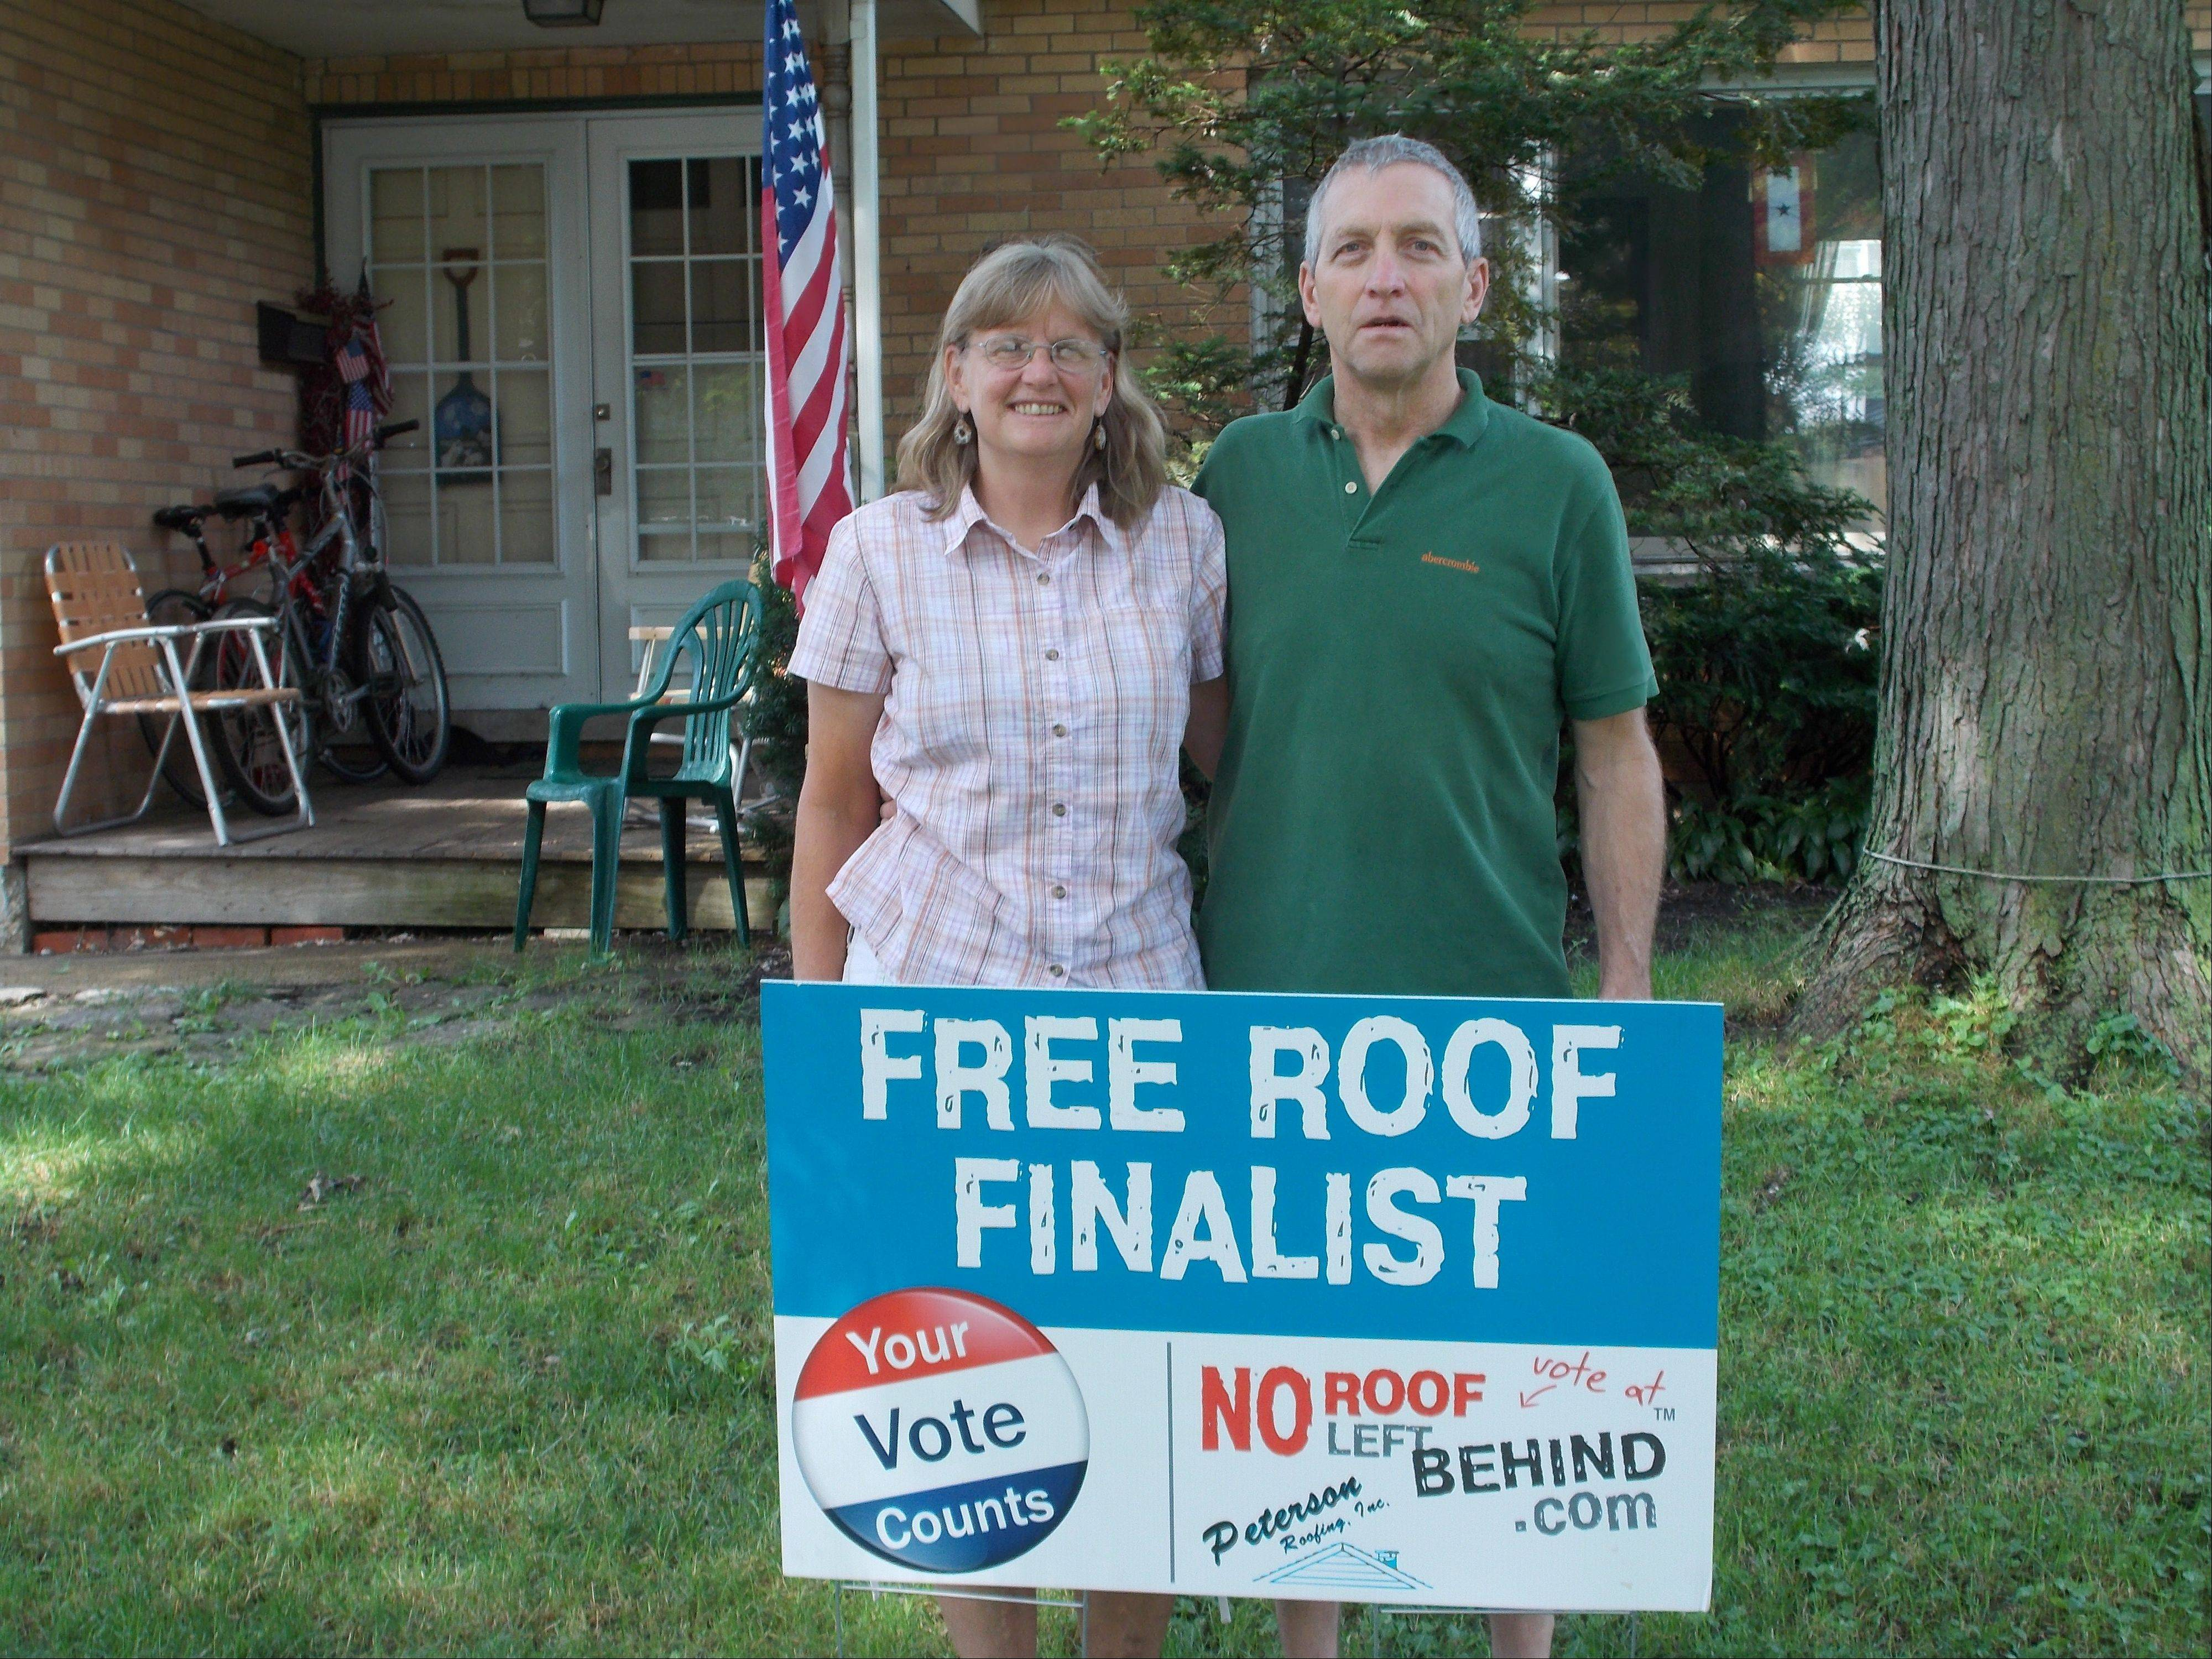 Heather and Scott Thornton of Palatine have won a new roof through a contest that sought a deserving family or suburban resident who have contributed in some way to their community.